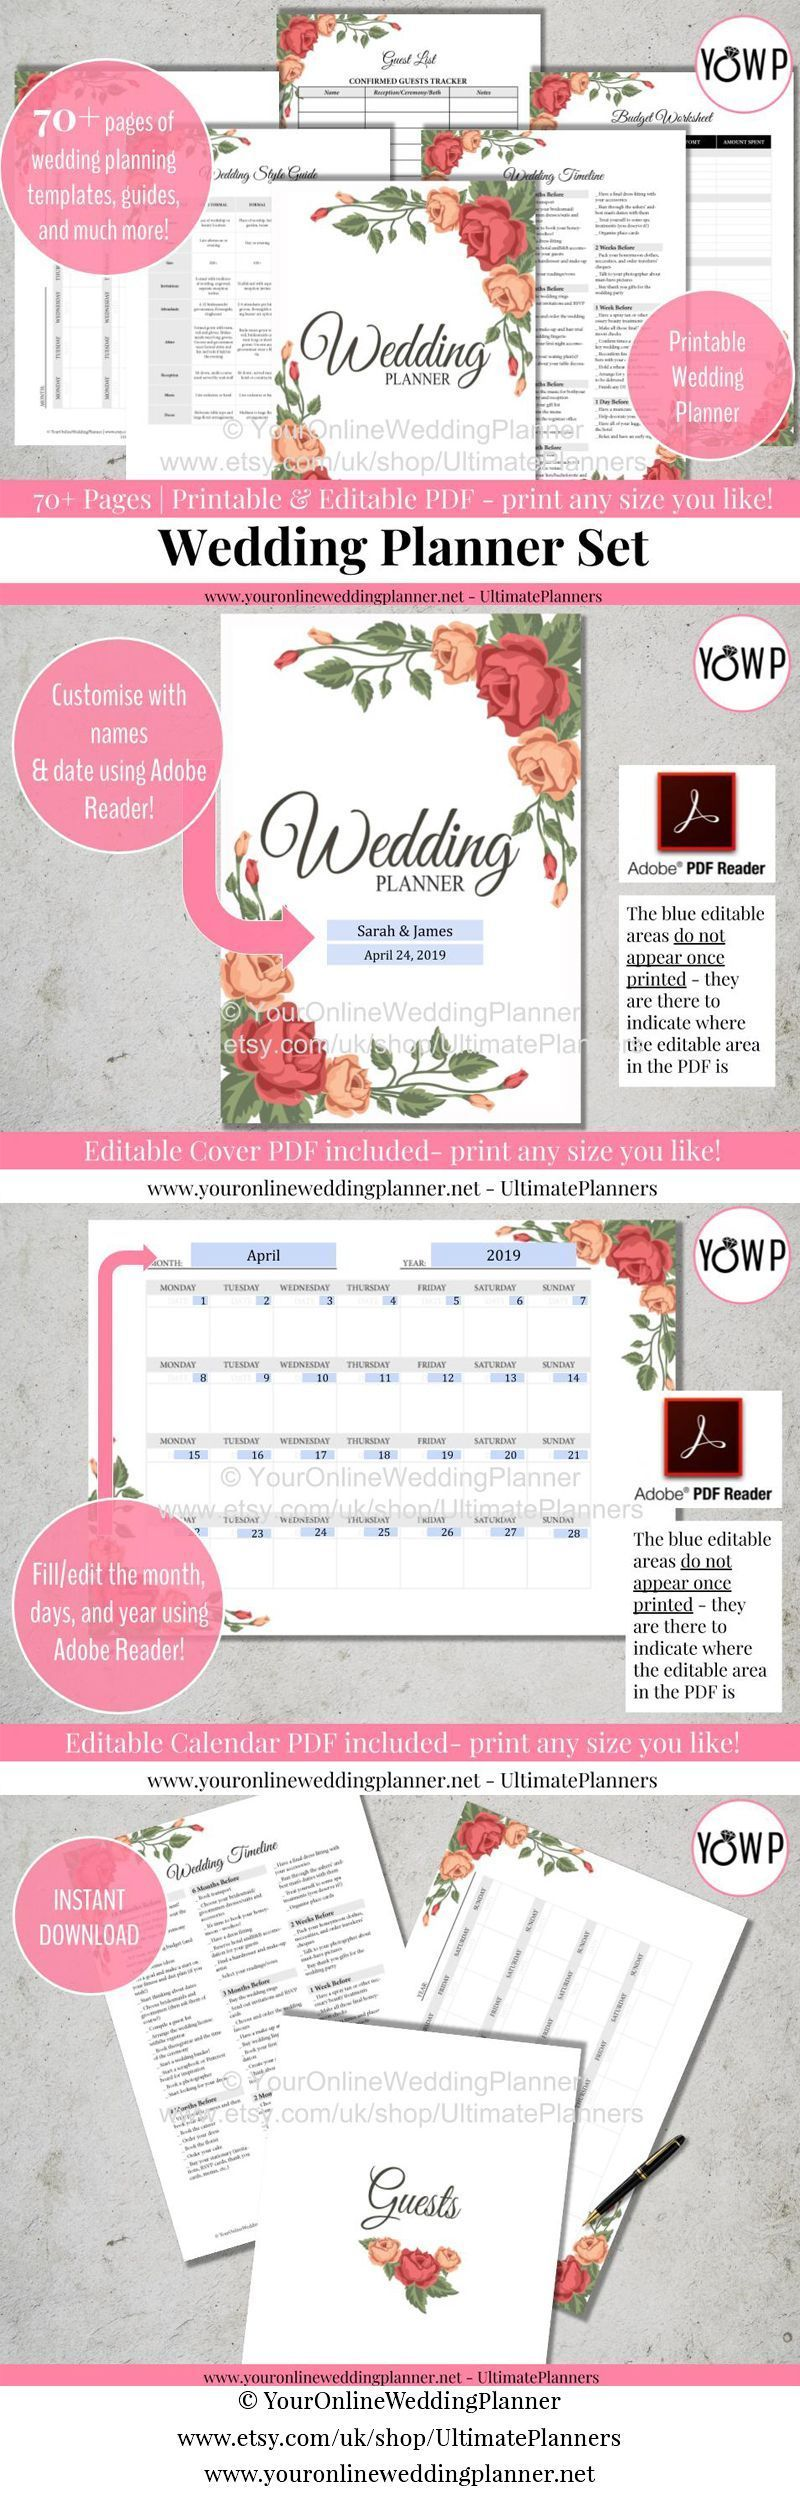 editable printable wedding planner set editable cover editable